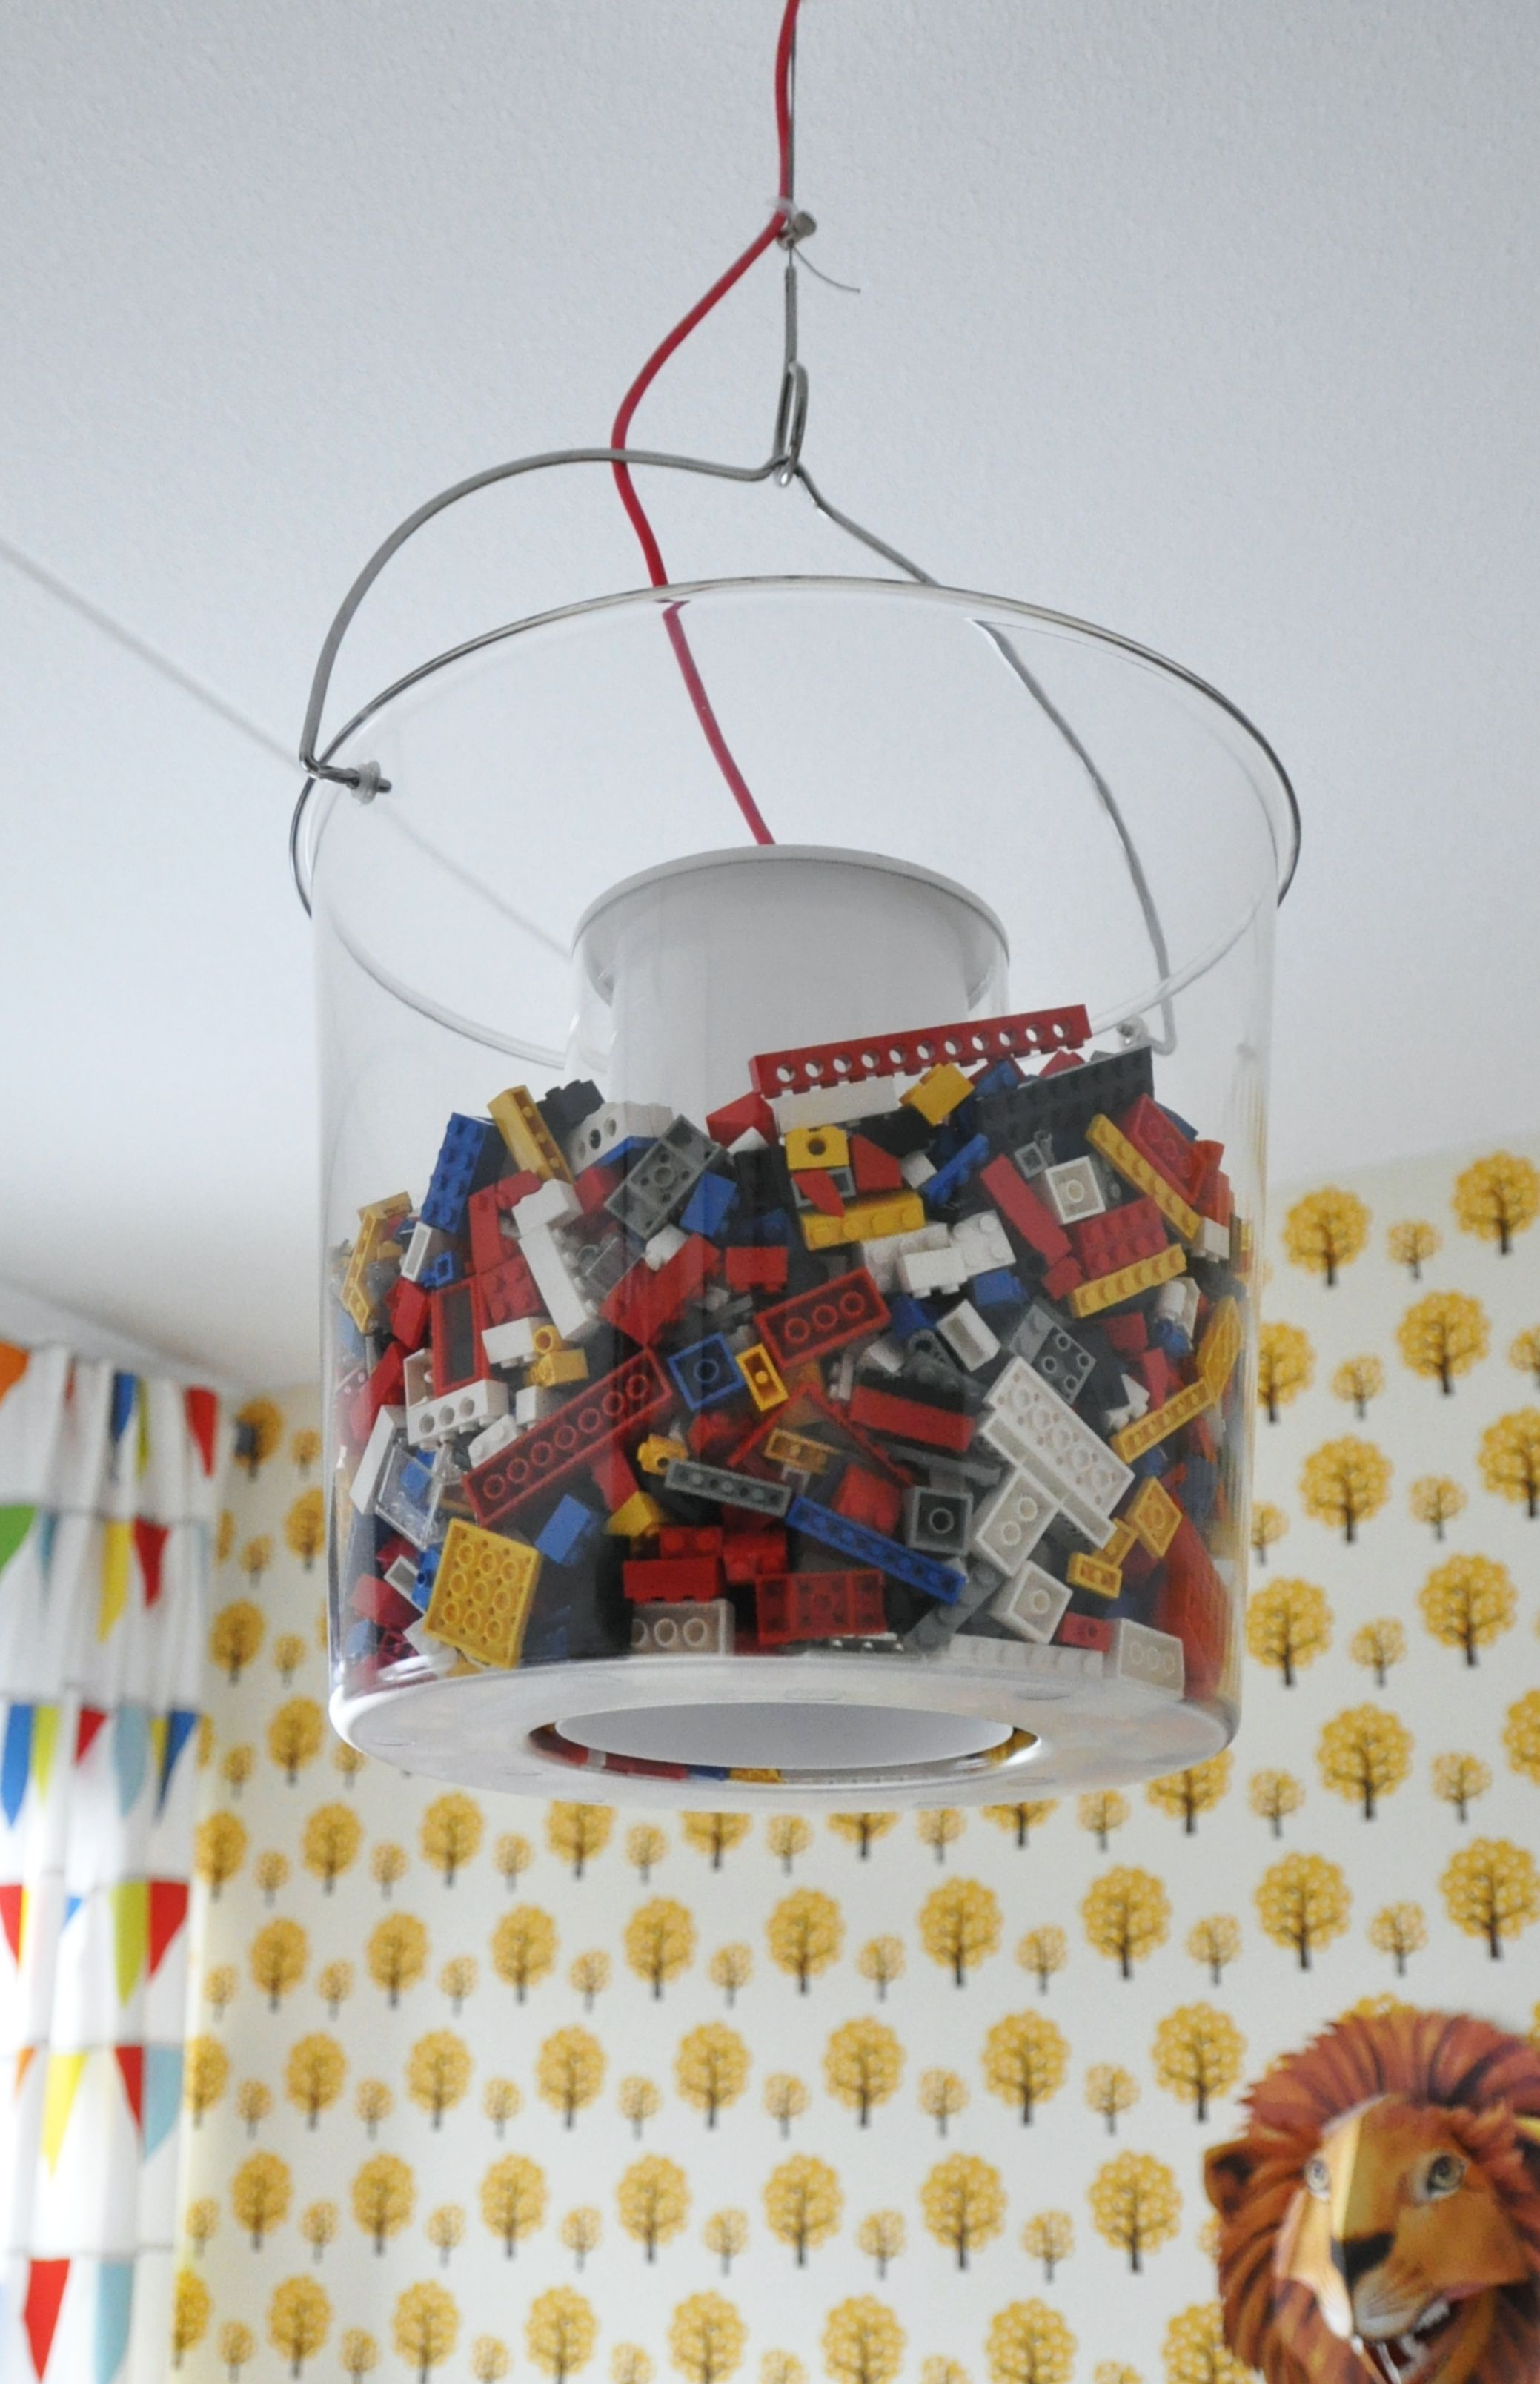 Room 2 Build Bedroom Kids Lego: How Cool Is This! Digging This Idea For A Play Room Too